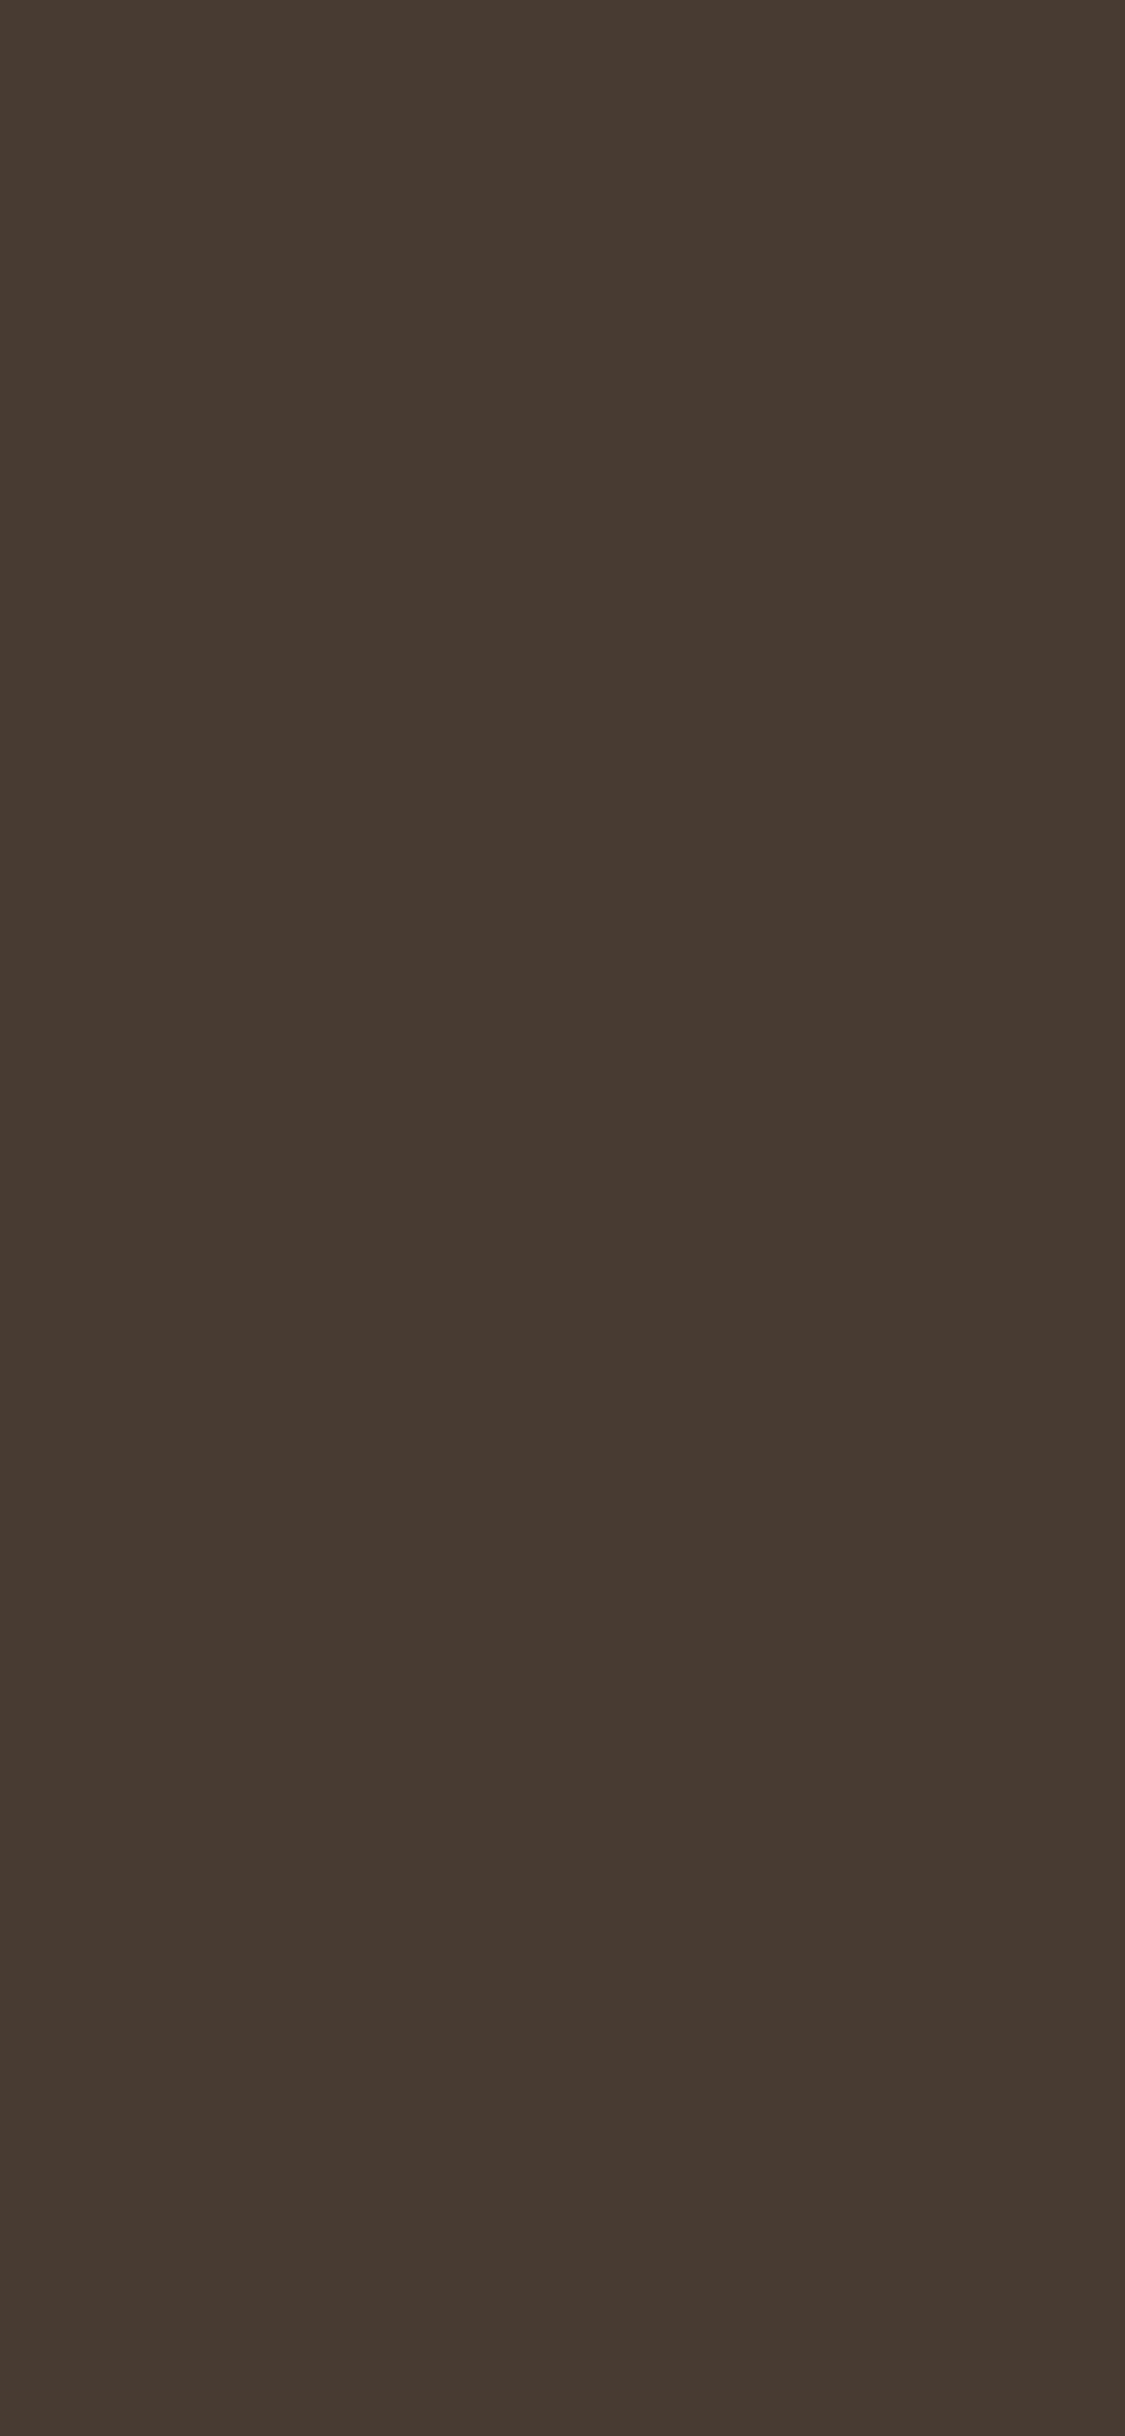 1125x2436 Dark Taupe Solid Color Background